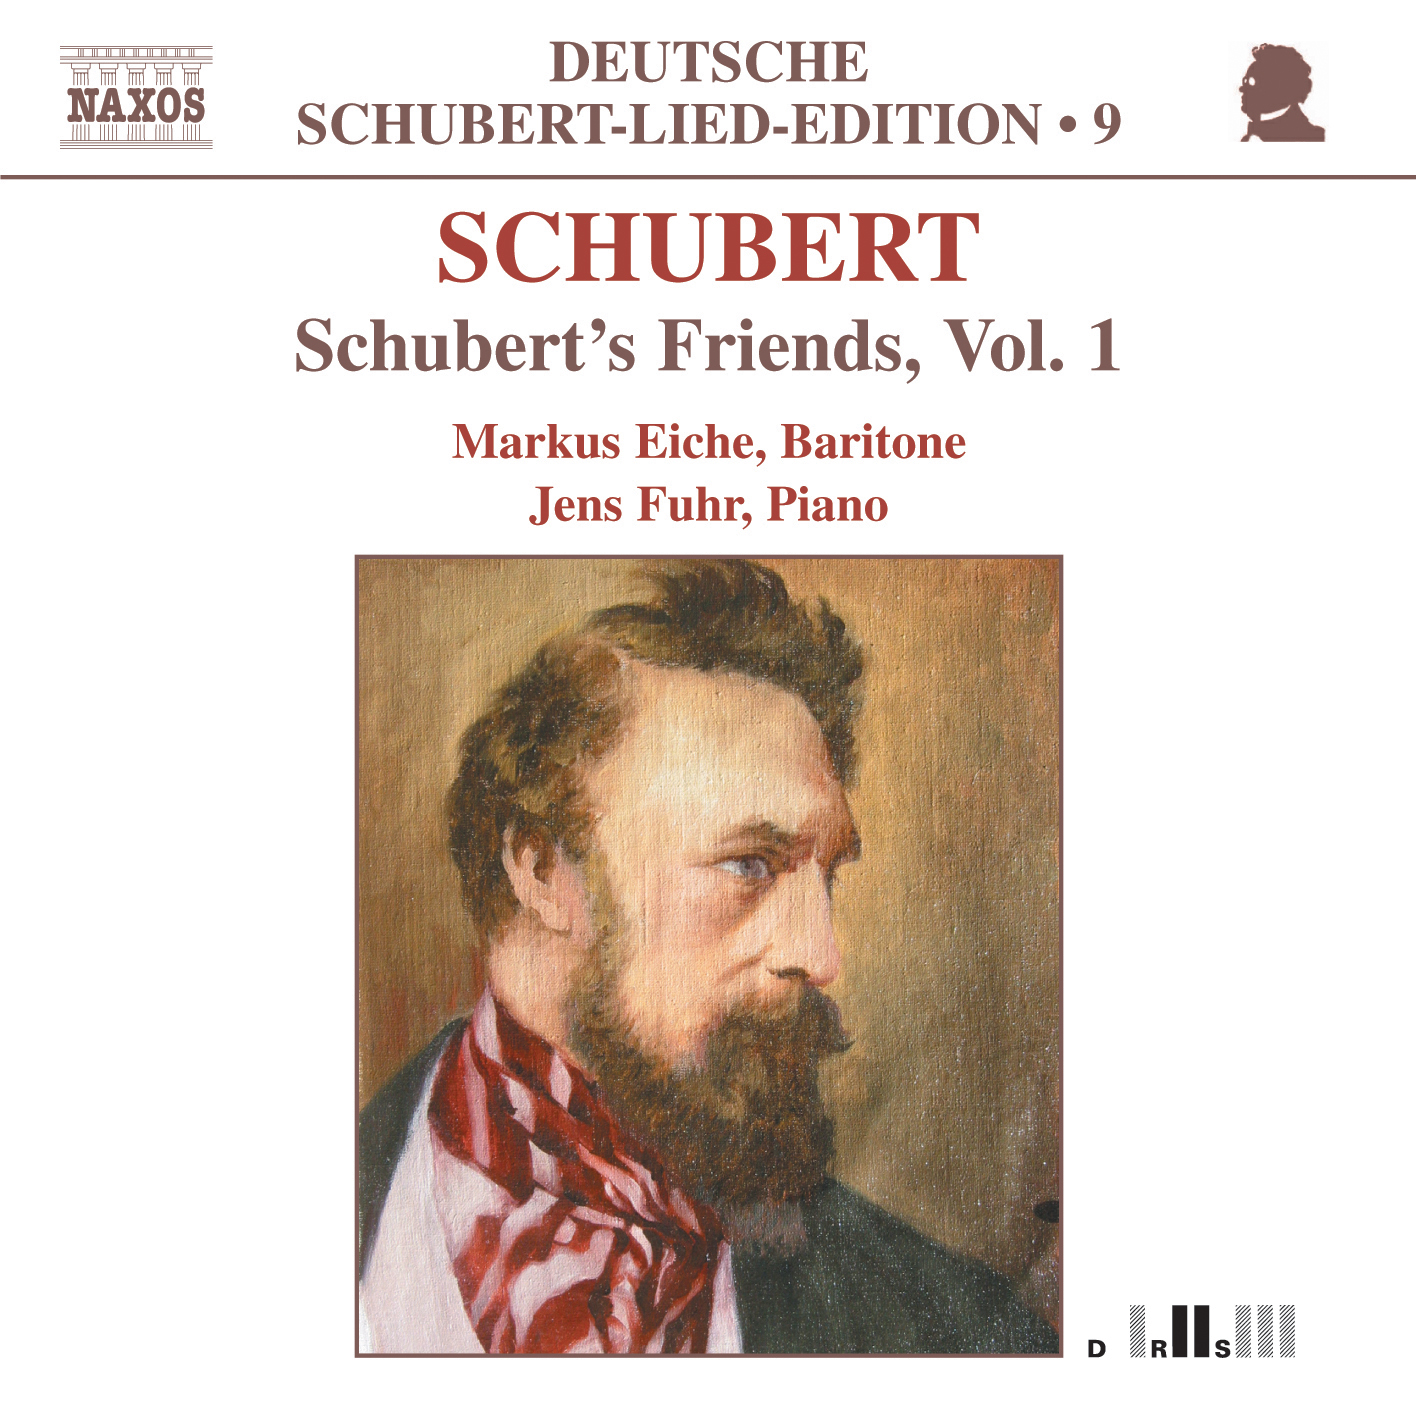 art songs and schubert Franz schubert - three songs for orchestra and soprano 0:14 i nacht und träume, d 827 (franz schubert, orchestrated by max reger) 4:26 ii die forelle, d 550 (franz schubert, orchestrated by.